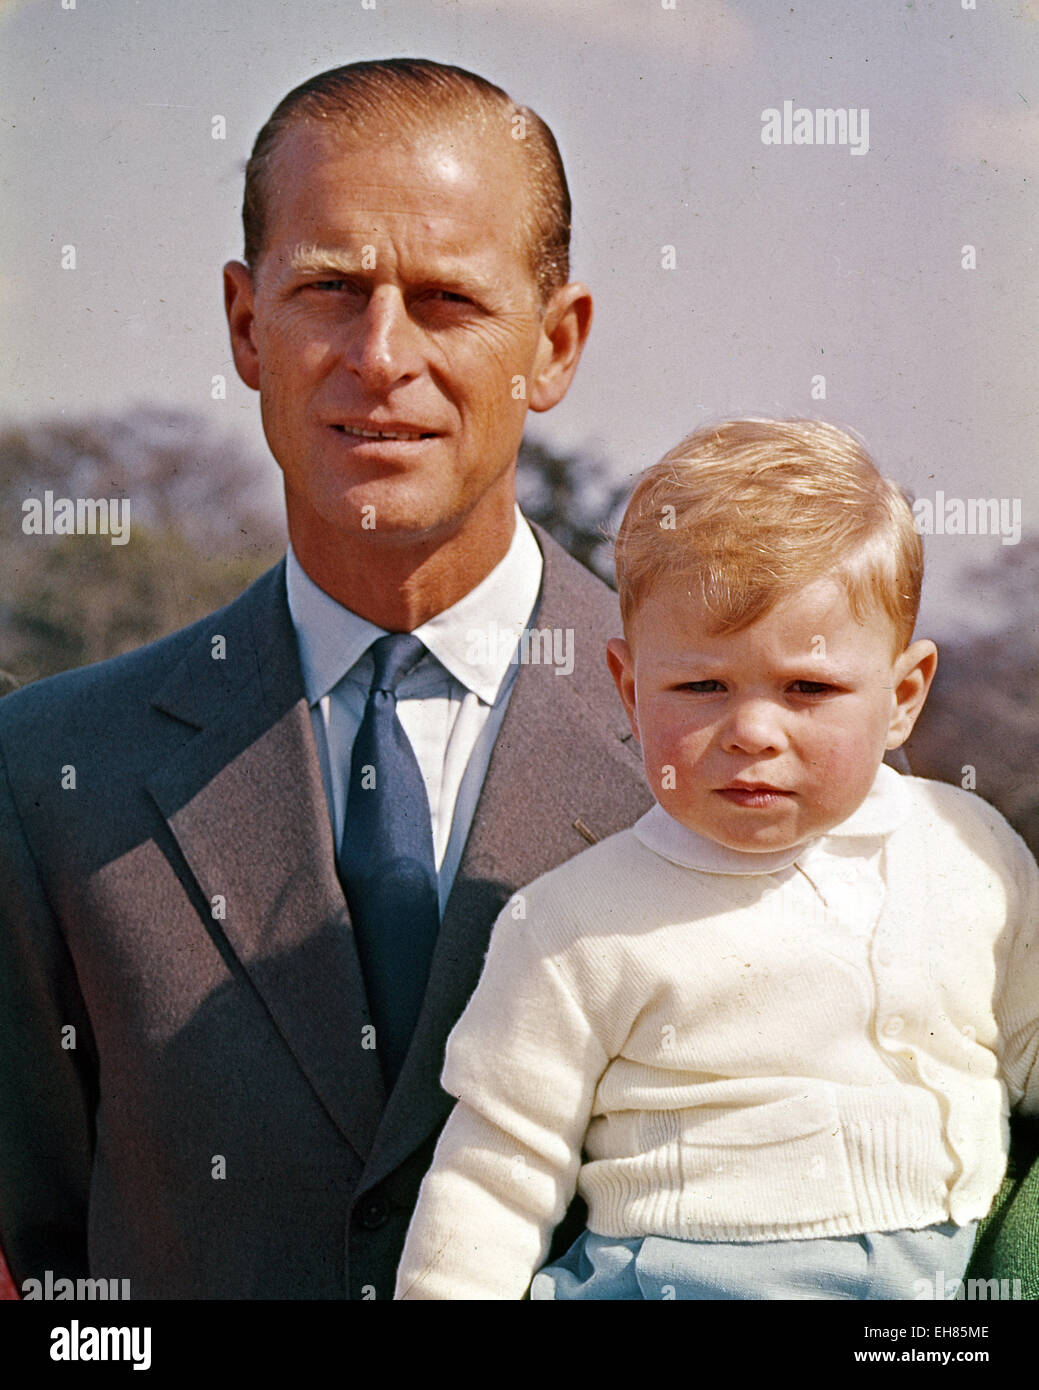 prince-philip-with-prince-charles-about-1950-EH85ME.jpg